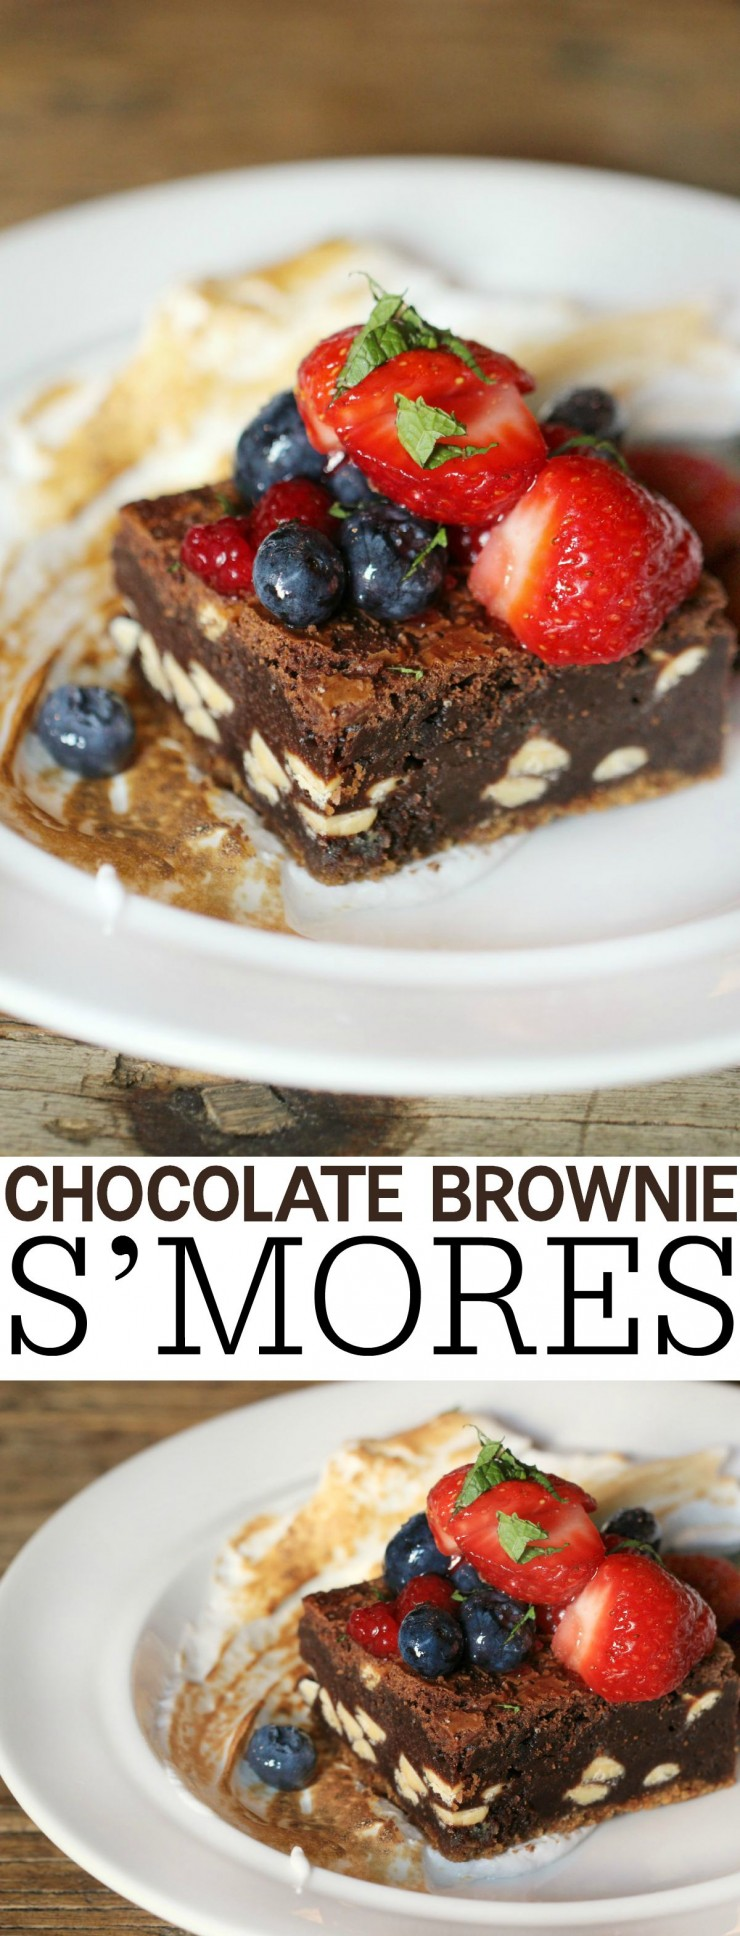 Chocolate Brownie S'mores